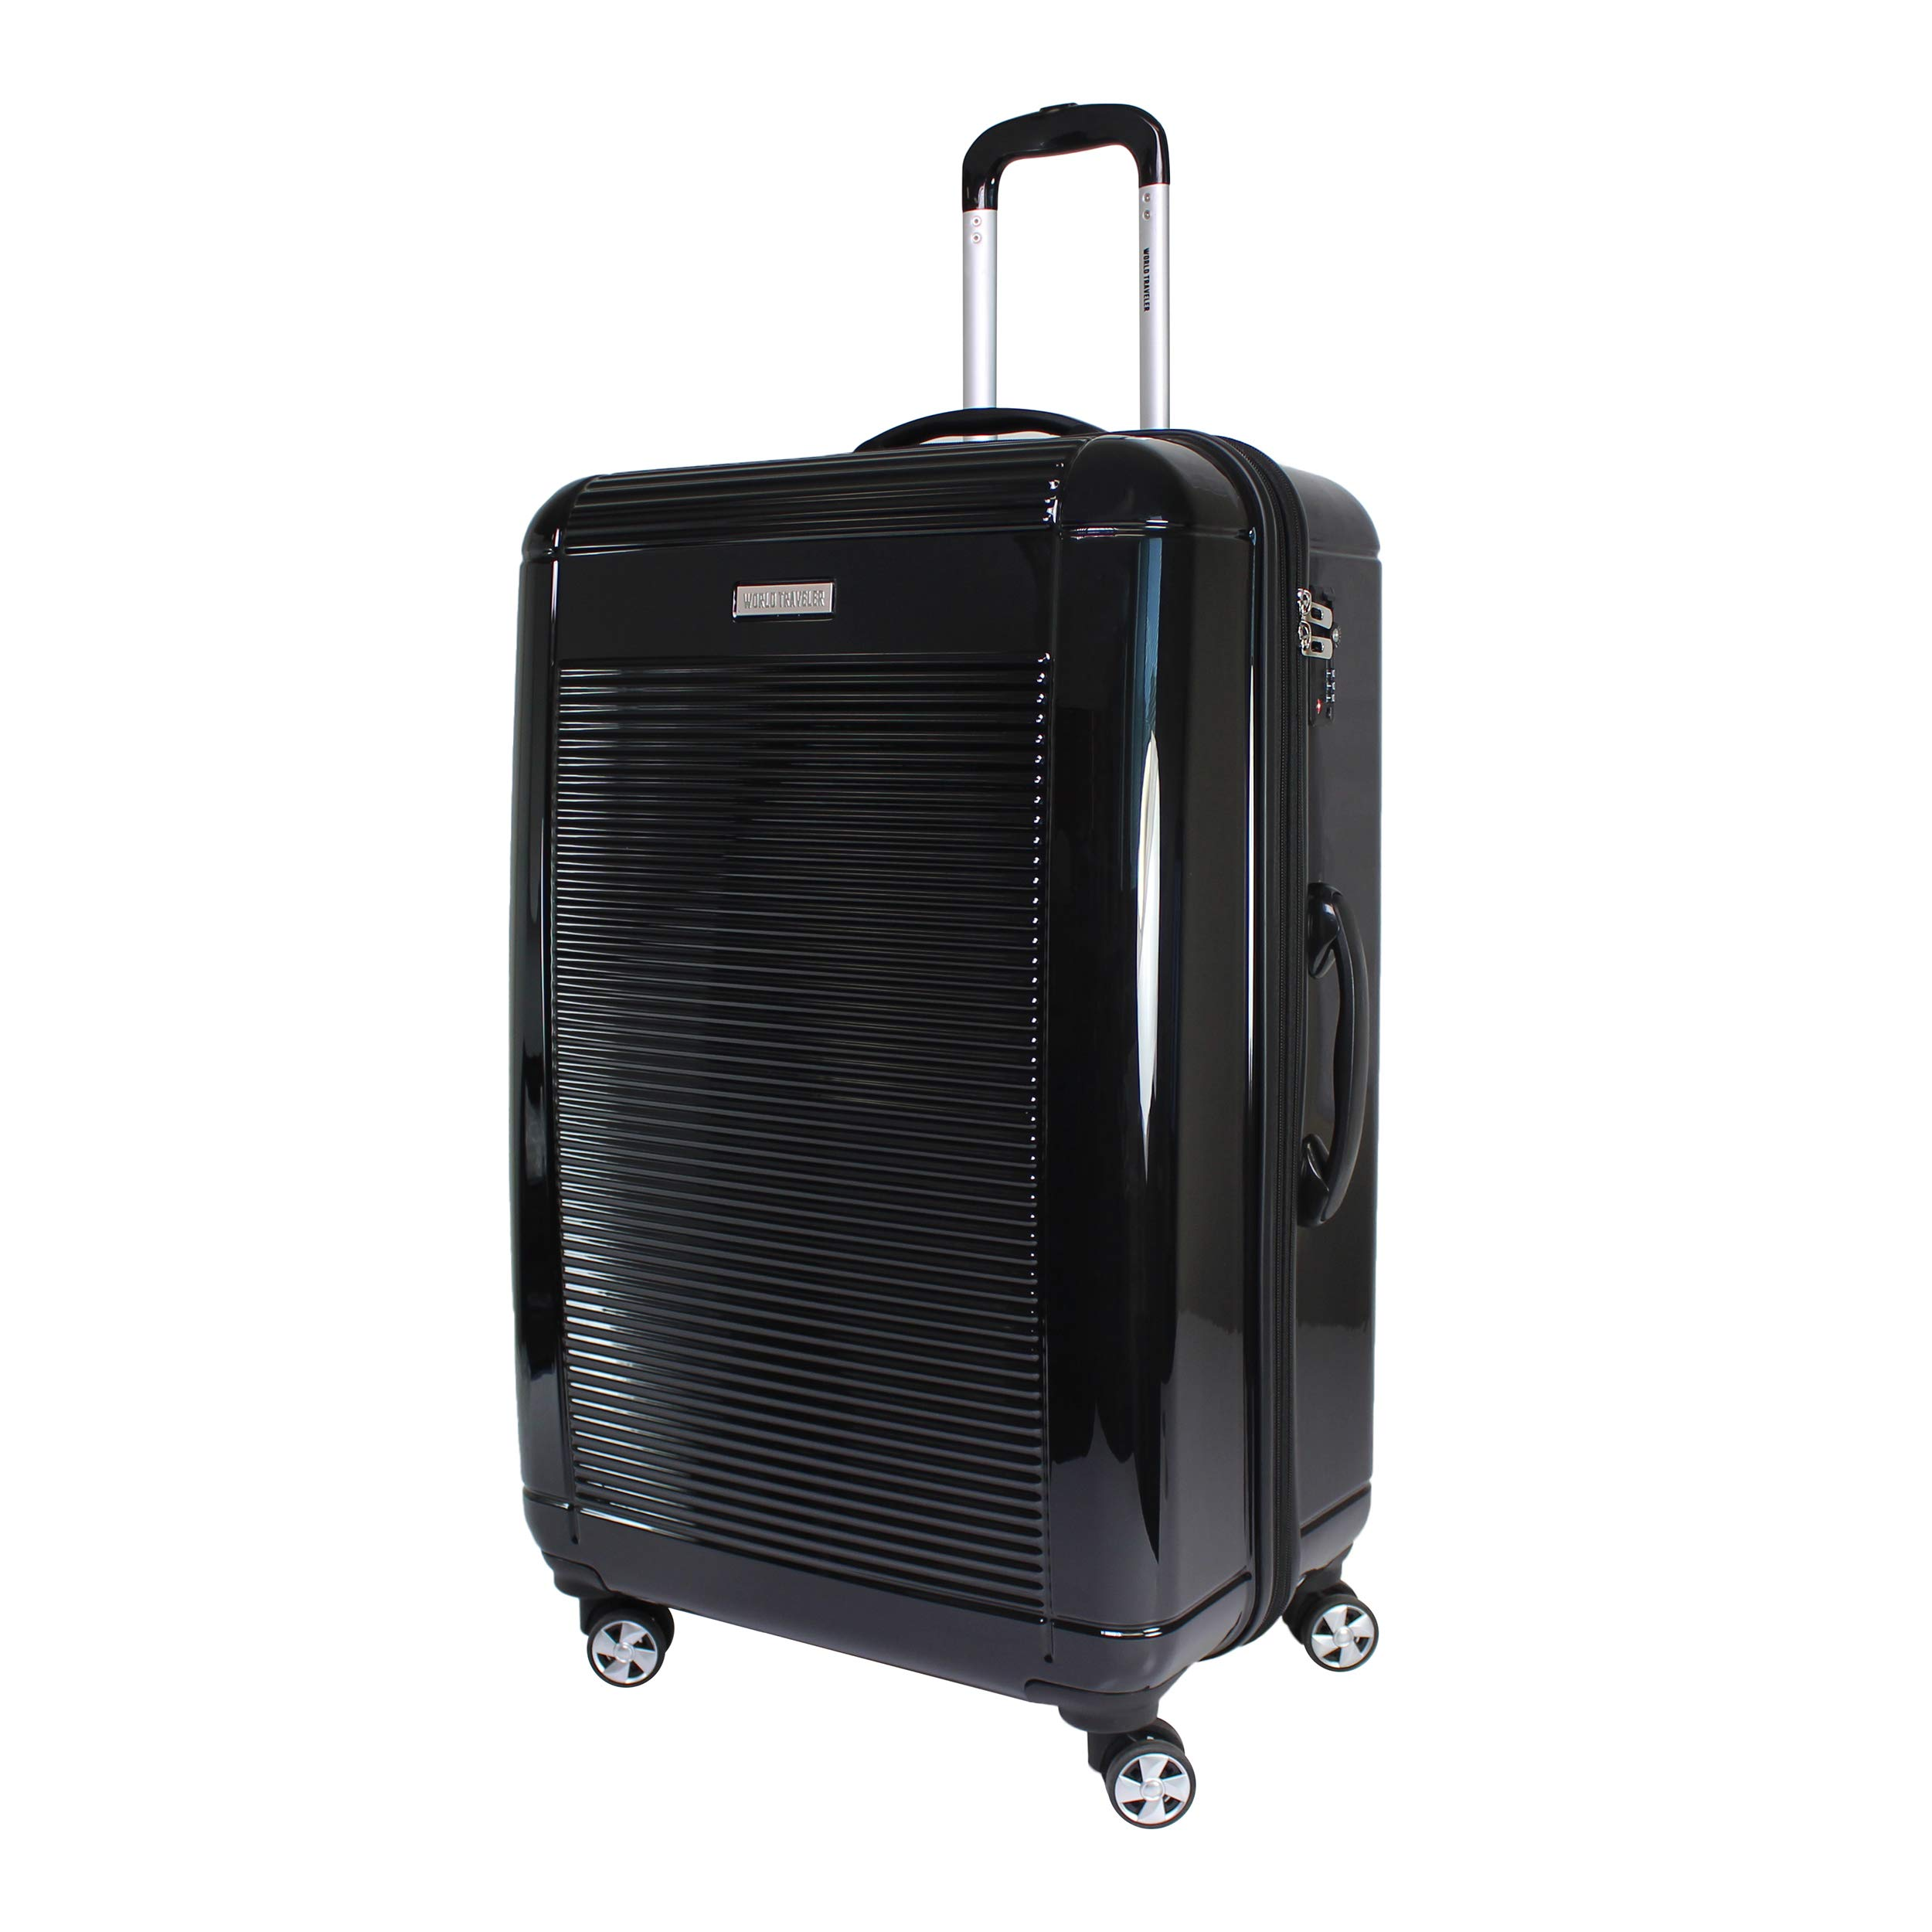 World Traveler Regal Hardside Lightweight Spinner Luggage Suitcase - Black (28-Inch)